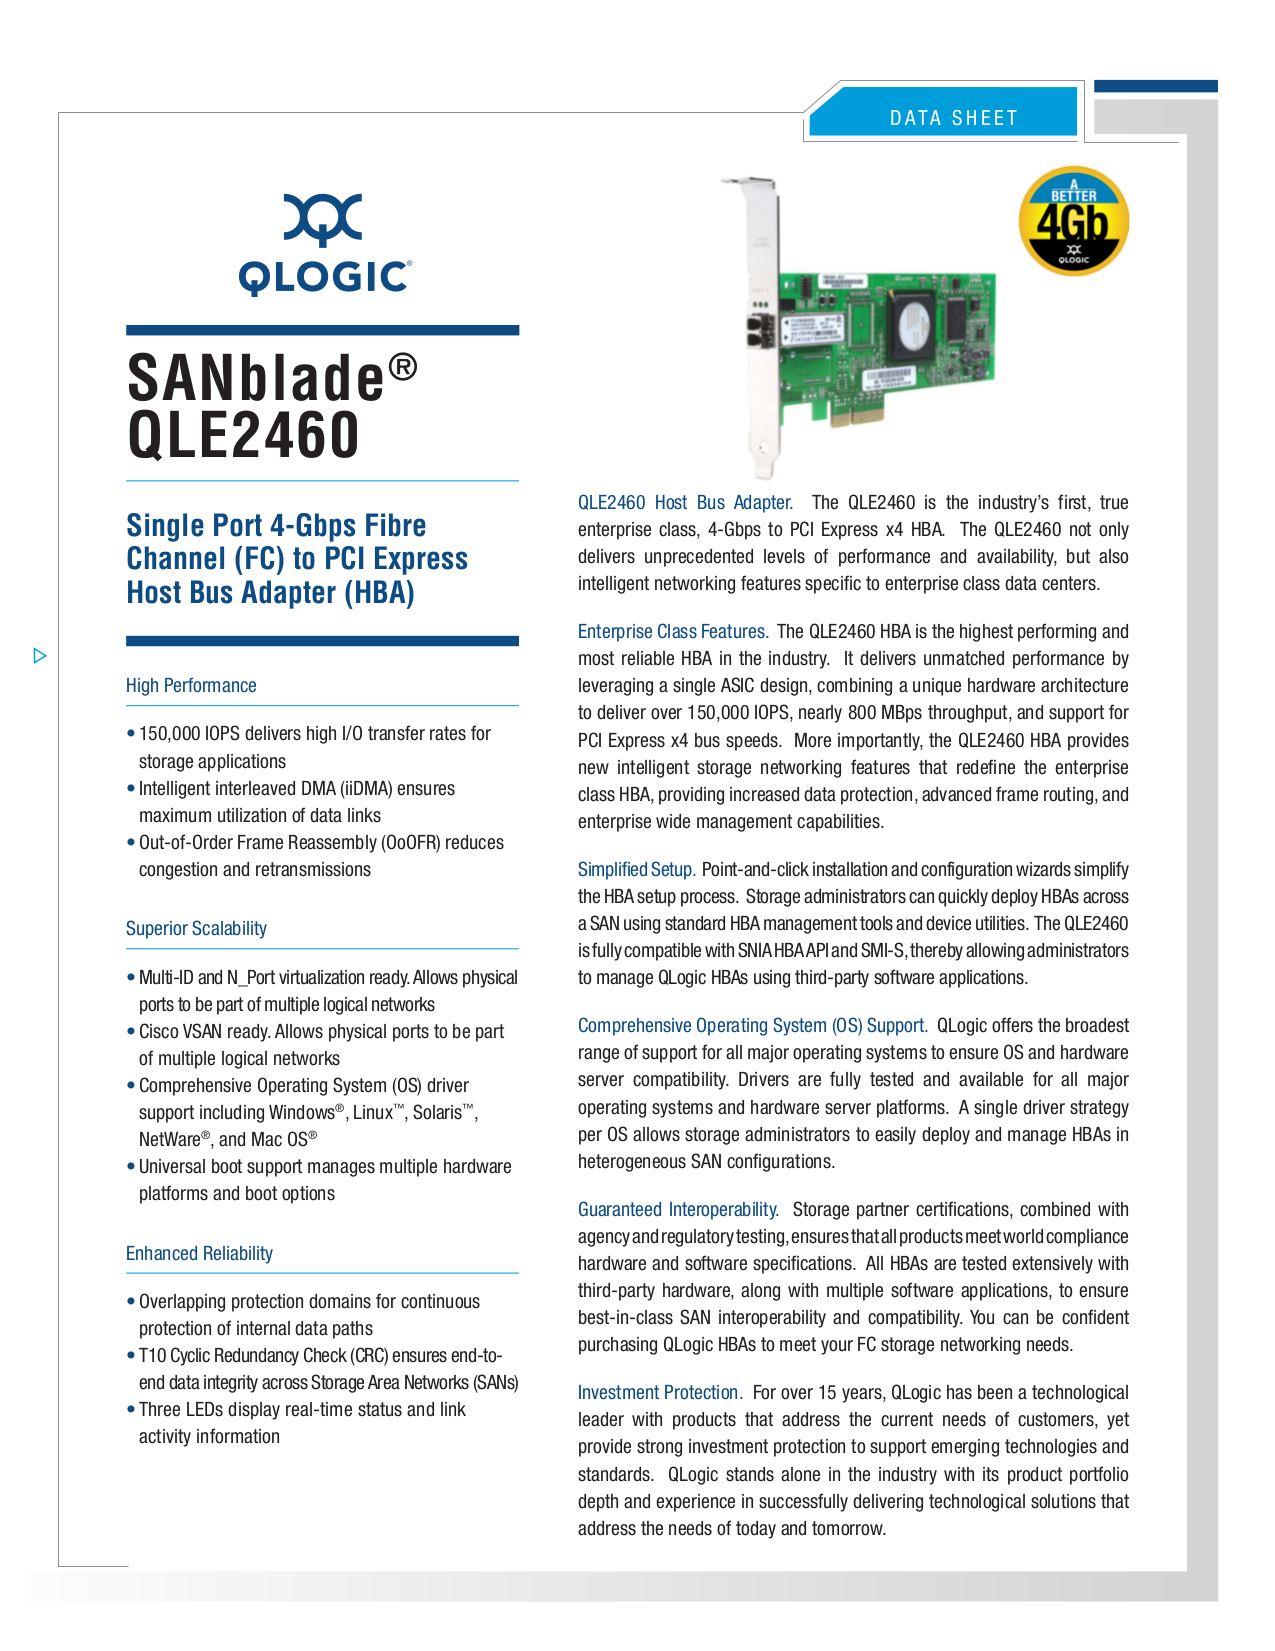 pdf for Qlogic Other SANblade QMH2462 Adapters manual